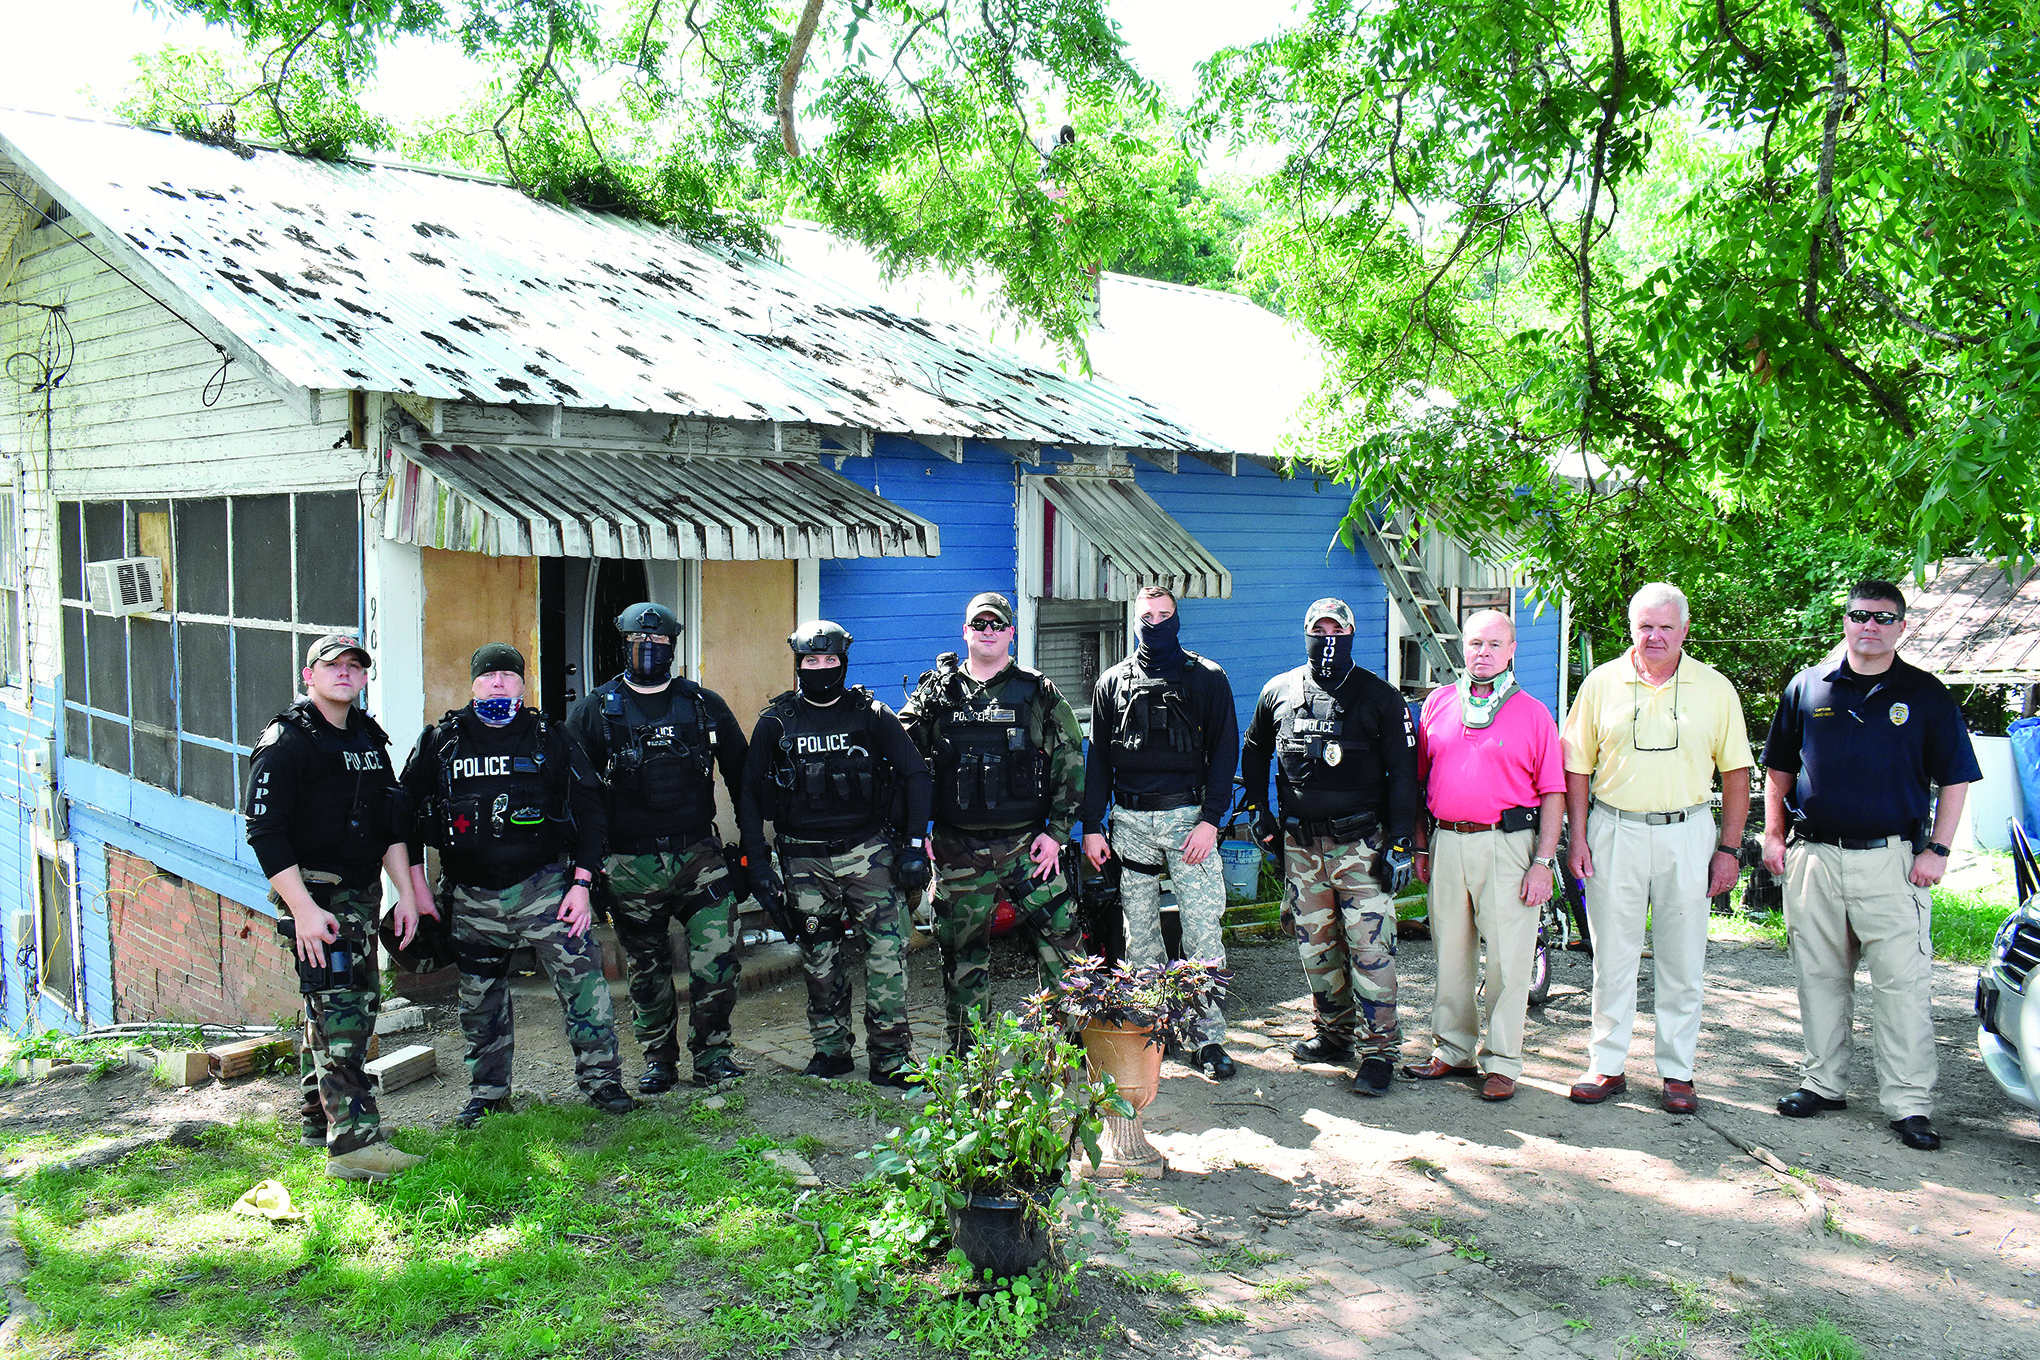 Jasper Police Department officers and Mayor David O'Mary stand in front of a house in Frisco that was the scene of  a drug bust Wednesday morning. O'Mary said he wanted to honor the department for their work on the case. One suspected drug dealer was arrested.